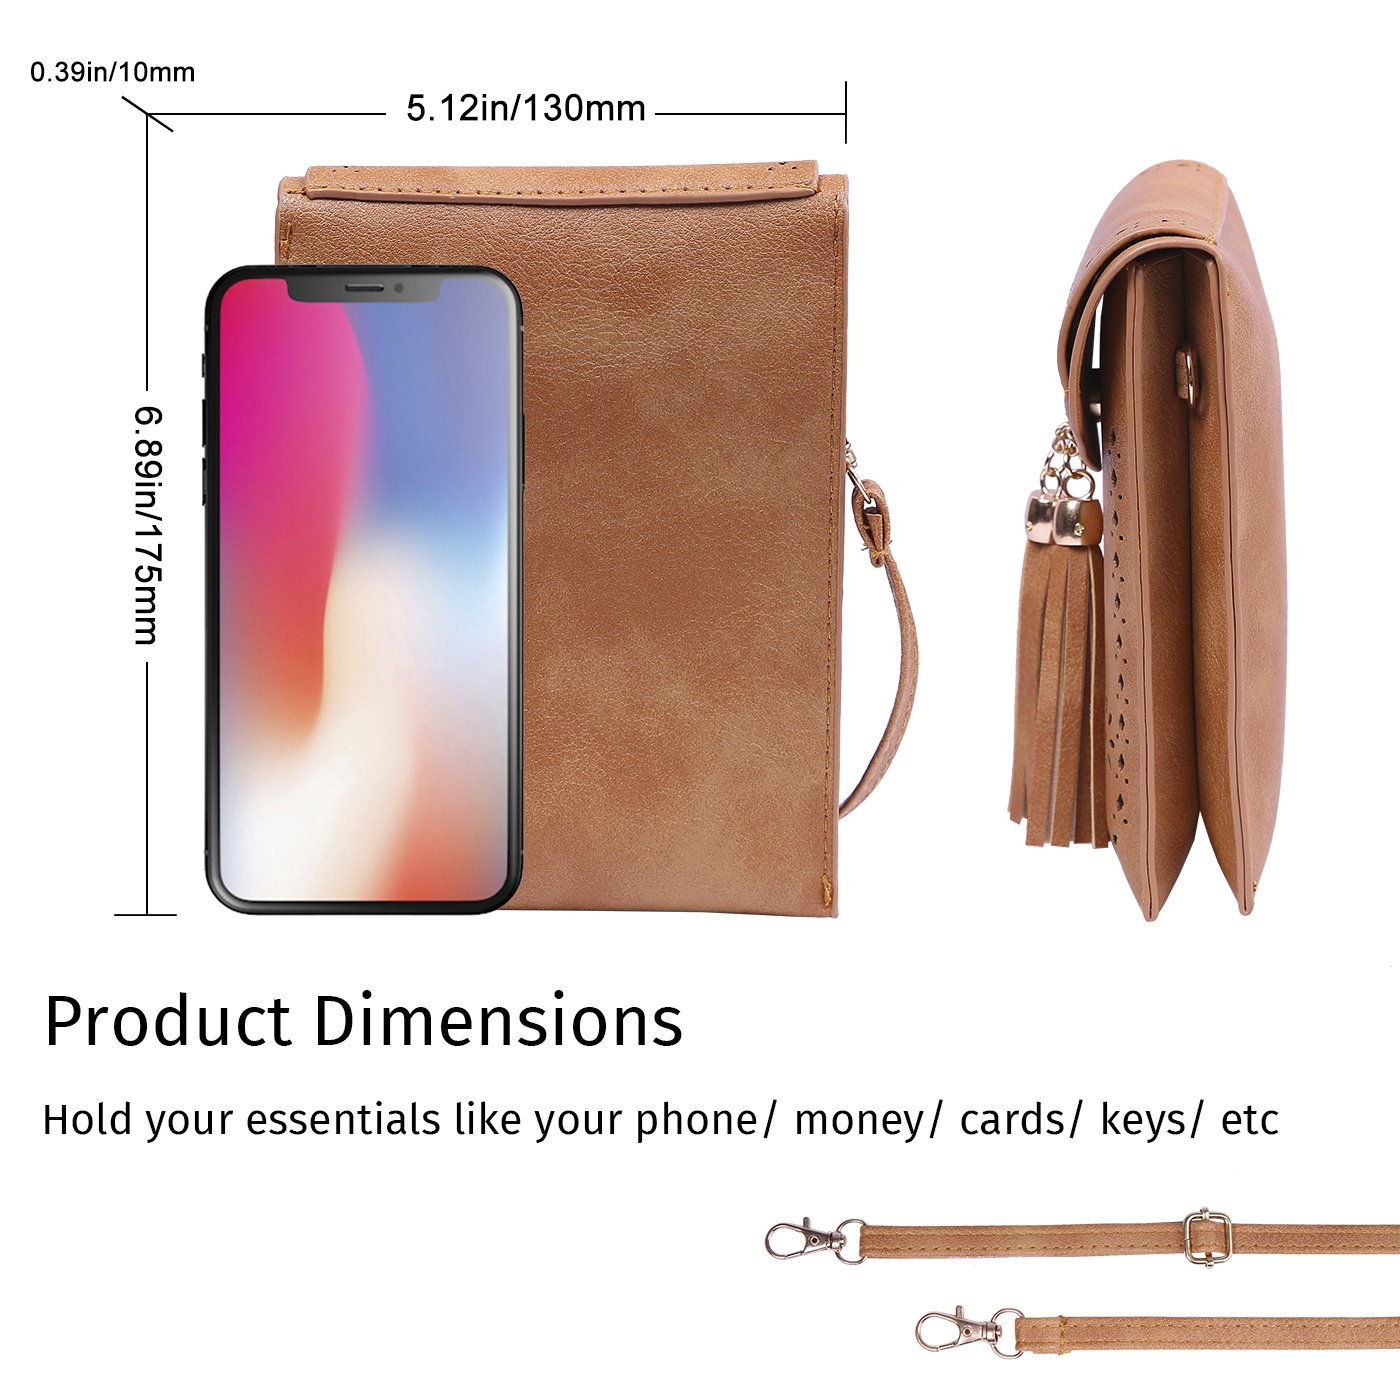 HDE Small Crossbody Pouch Purse Tassel Travel Phone Wallet Vintage Leather Bags (Brown) by HDE (Image #3)